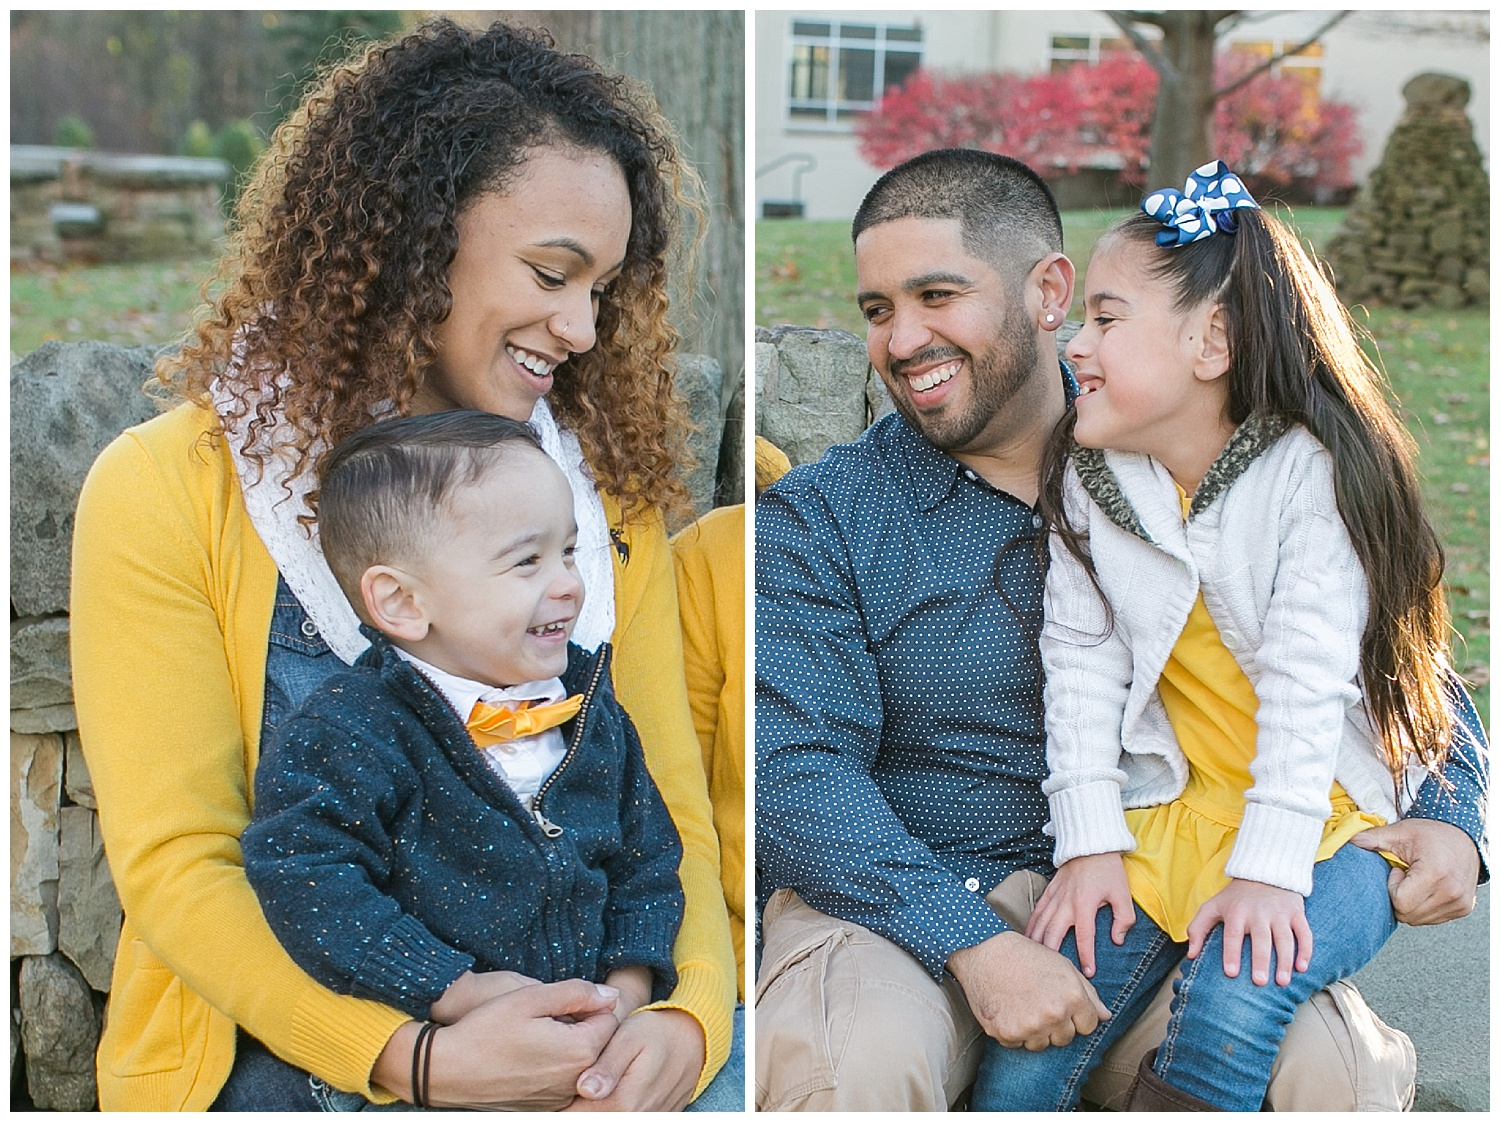 Harley School Family session - Rochester NY - Whimsy roots 36.jpg